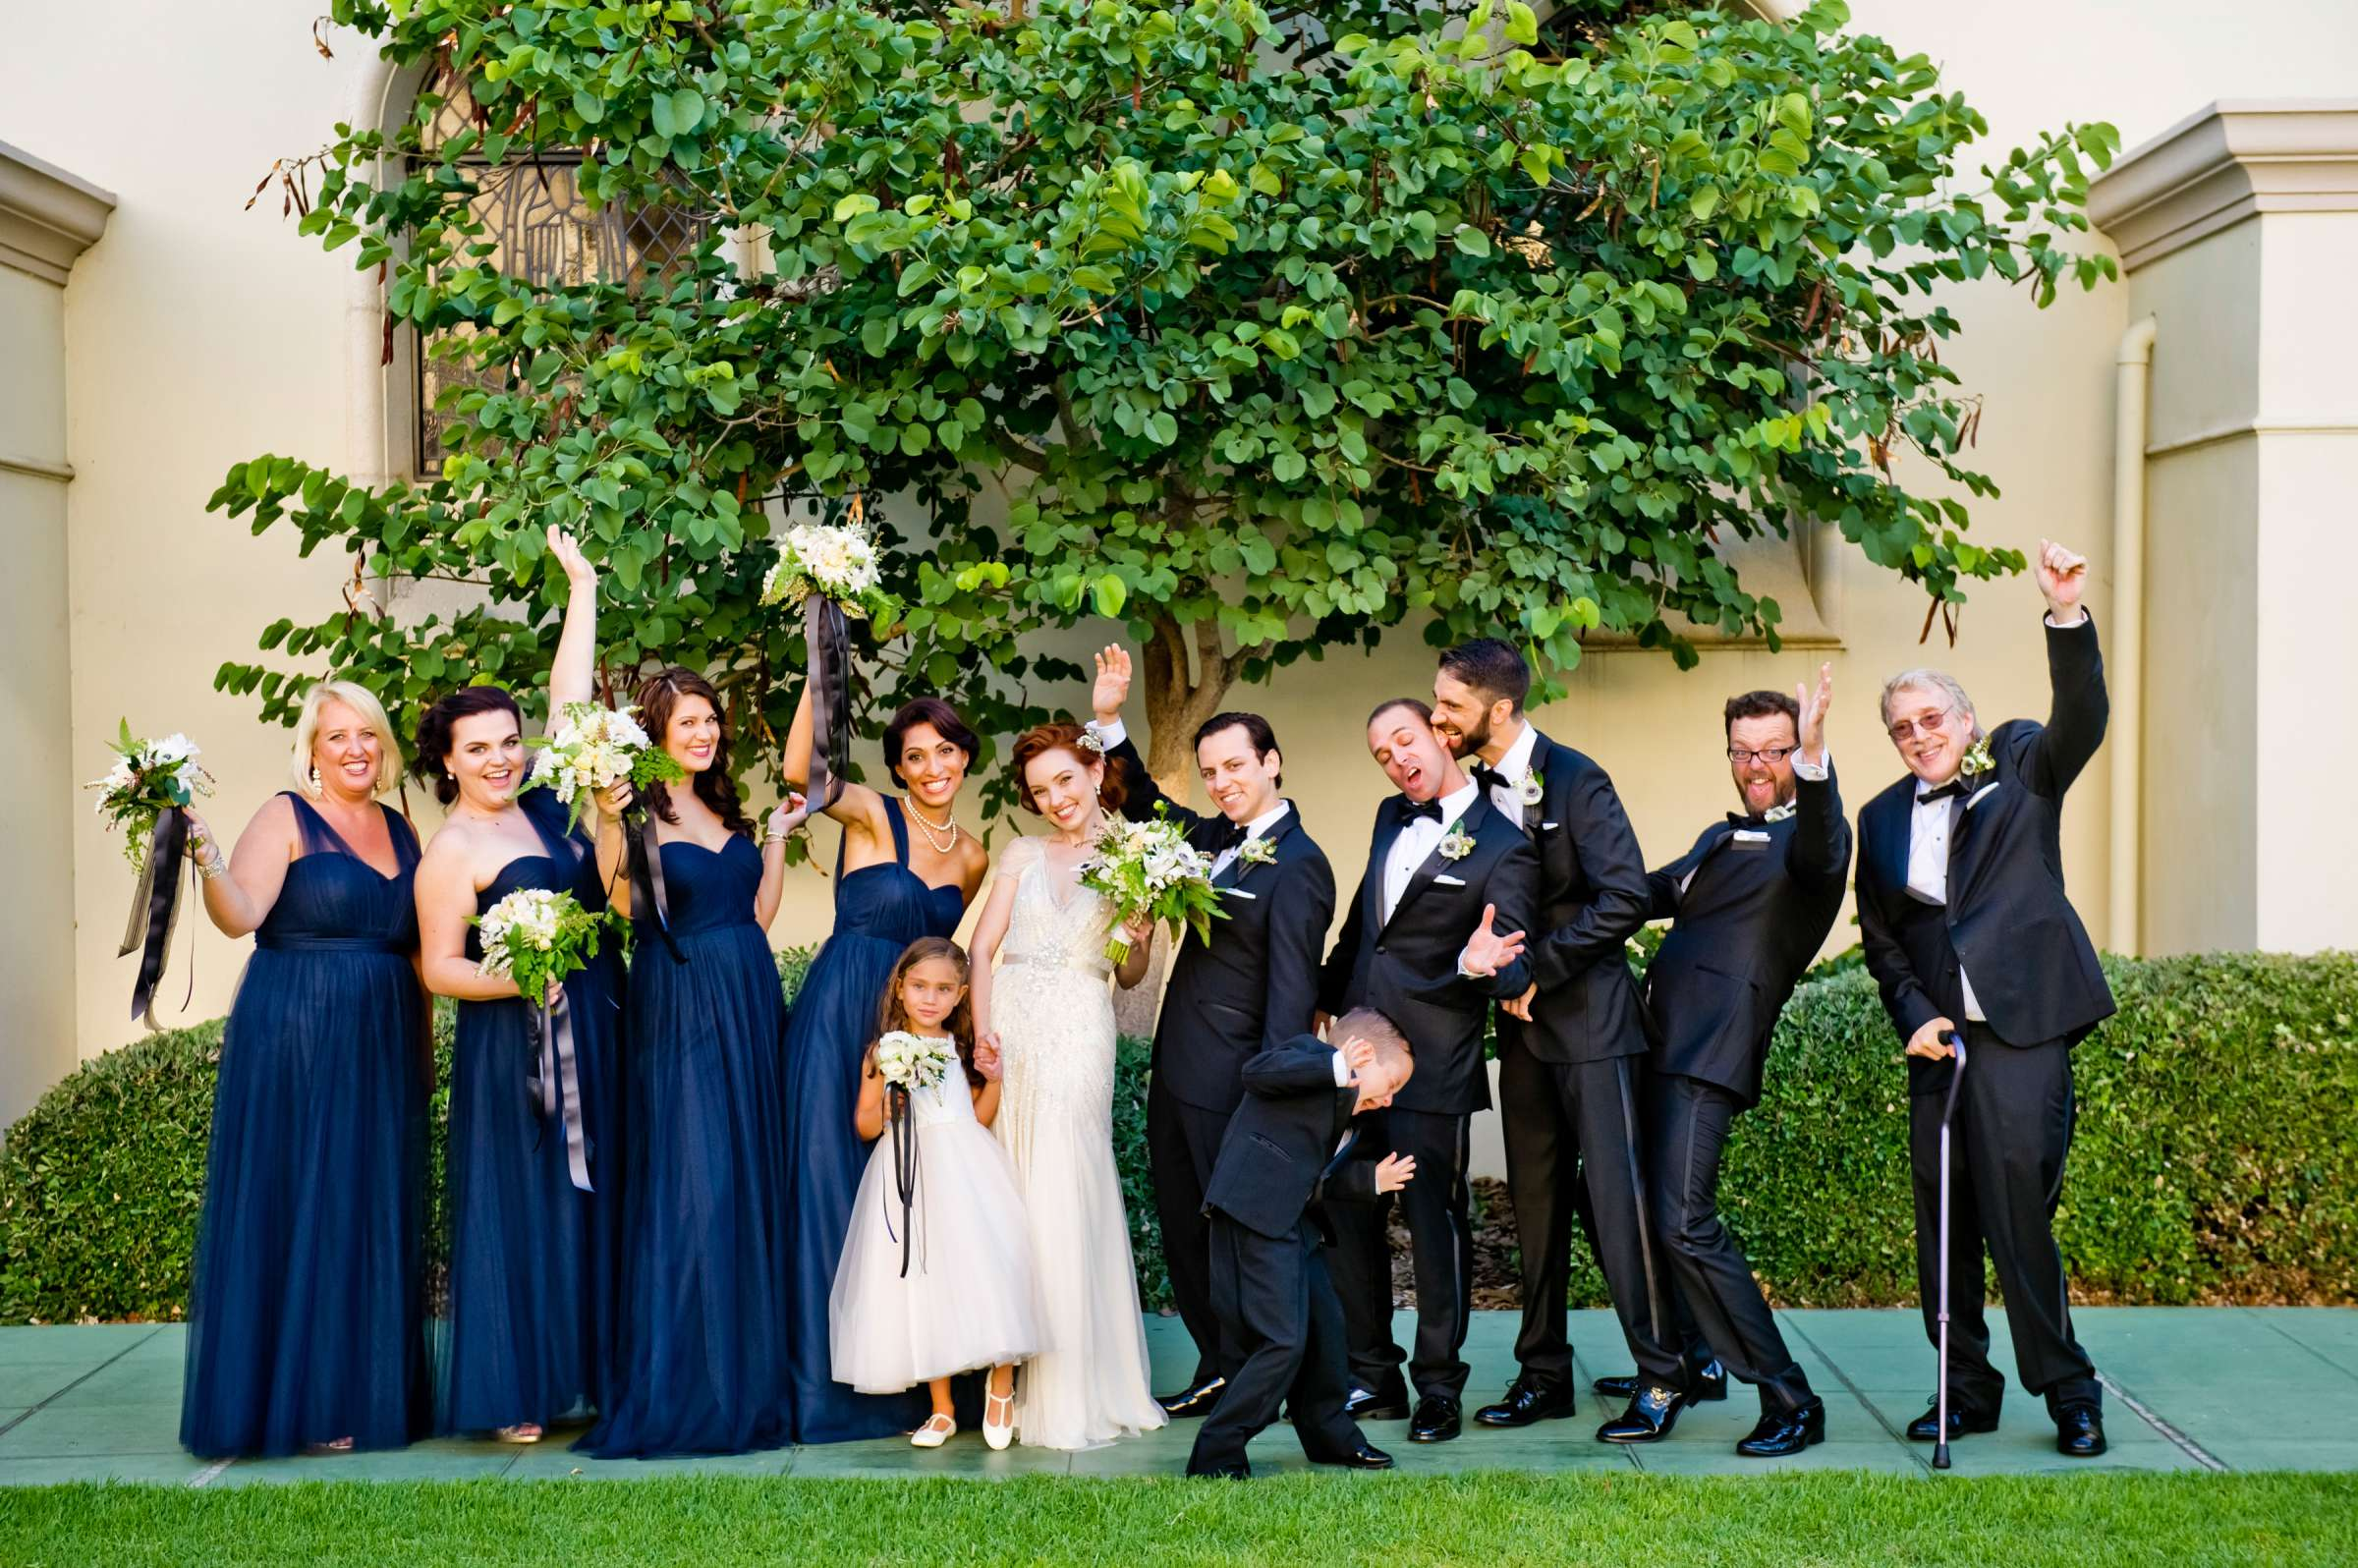 The Prado Wedding coordinated by Francine Ribeau Events, Rosalyn and Adam Wedding Photo #7 by True Photography